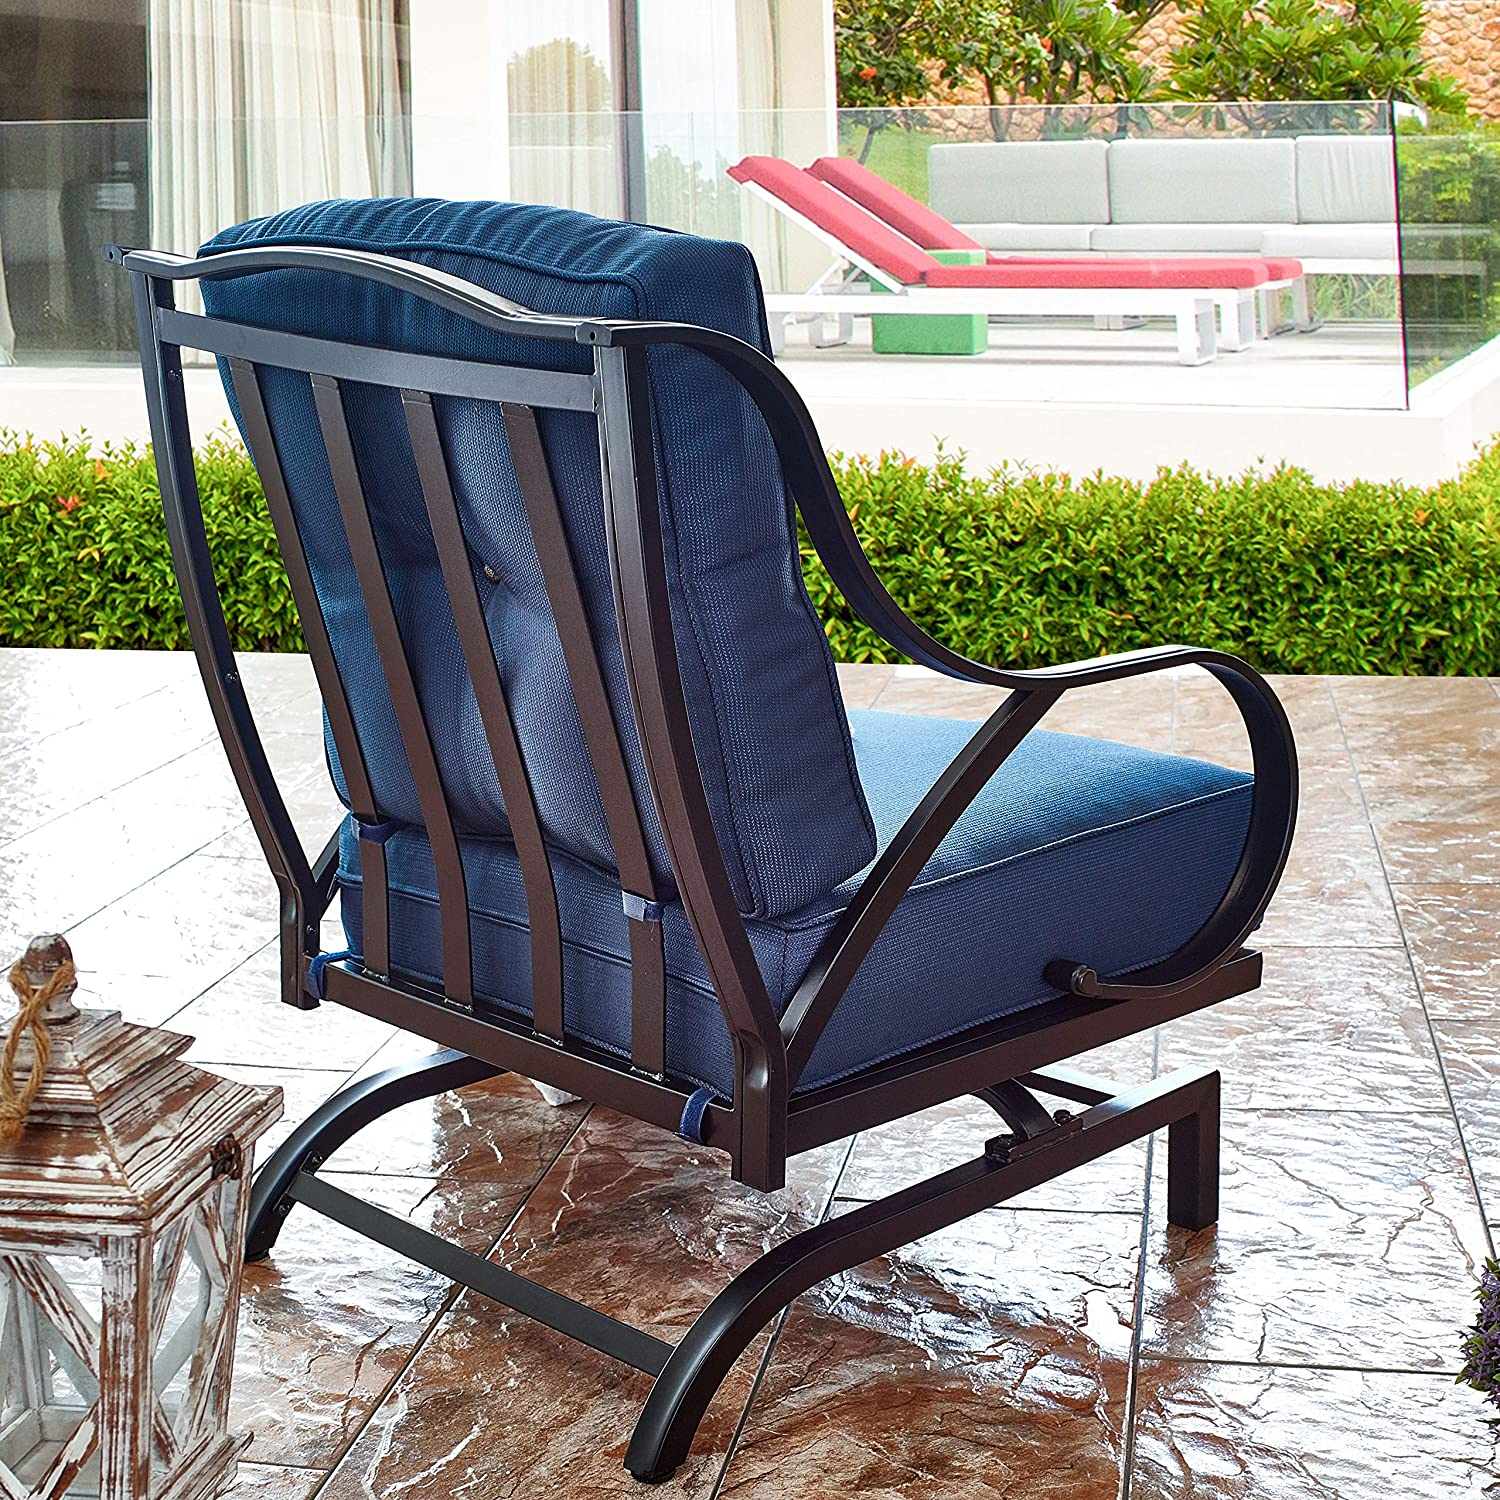 Top Space Rocking Motion Patio Chair Outdoor Deep Seating Club Chair Metal Furniture Set with Soft Cushion Sturdy Metal Frame Furniture for Garden Yard Lawn Poolside 1PCS, Blue